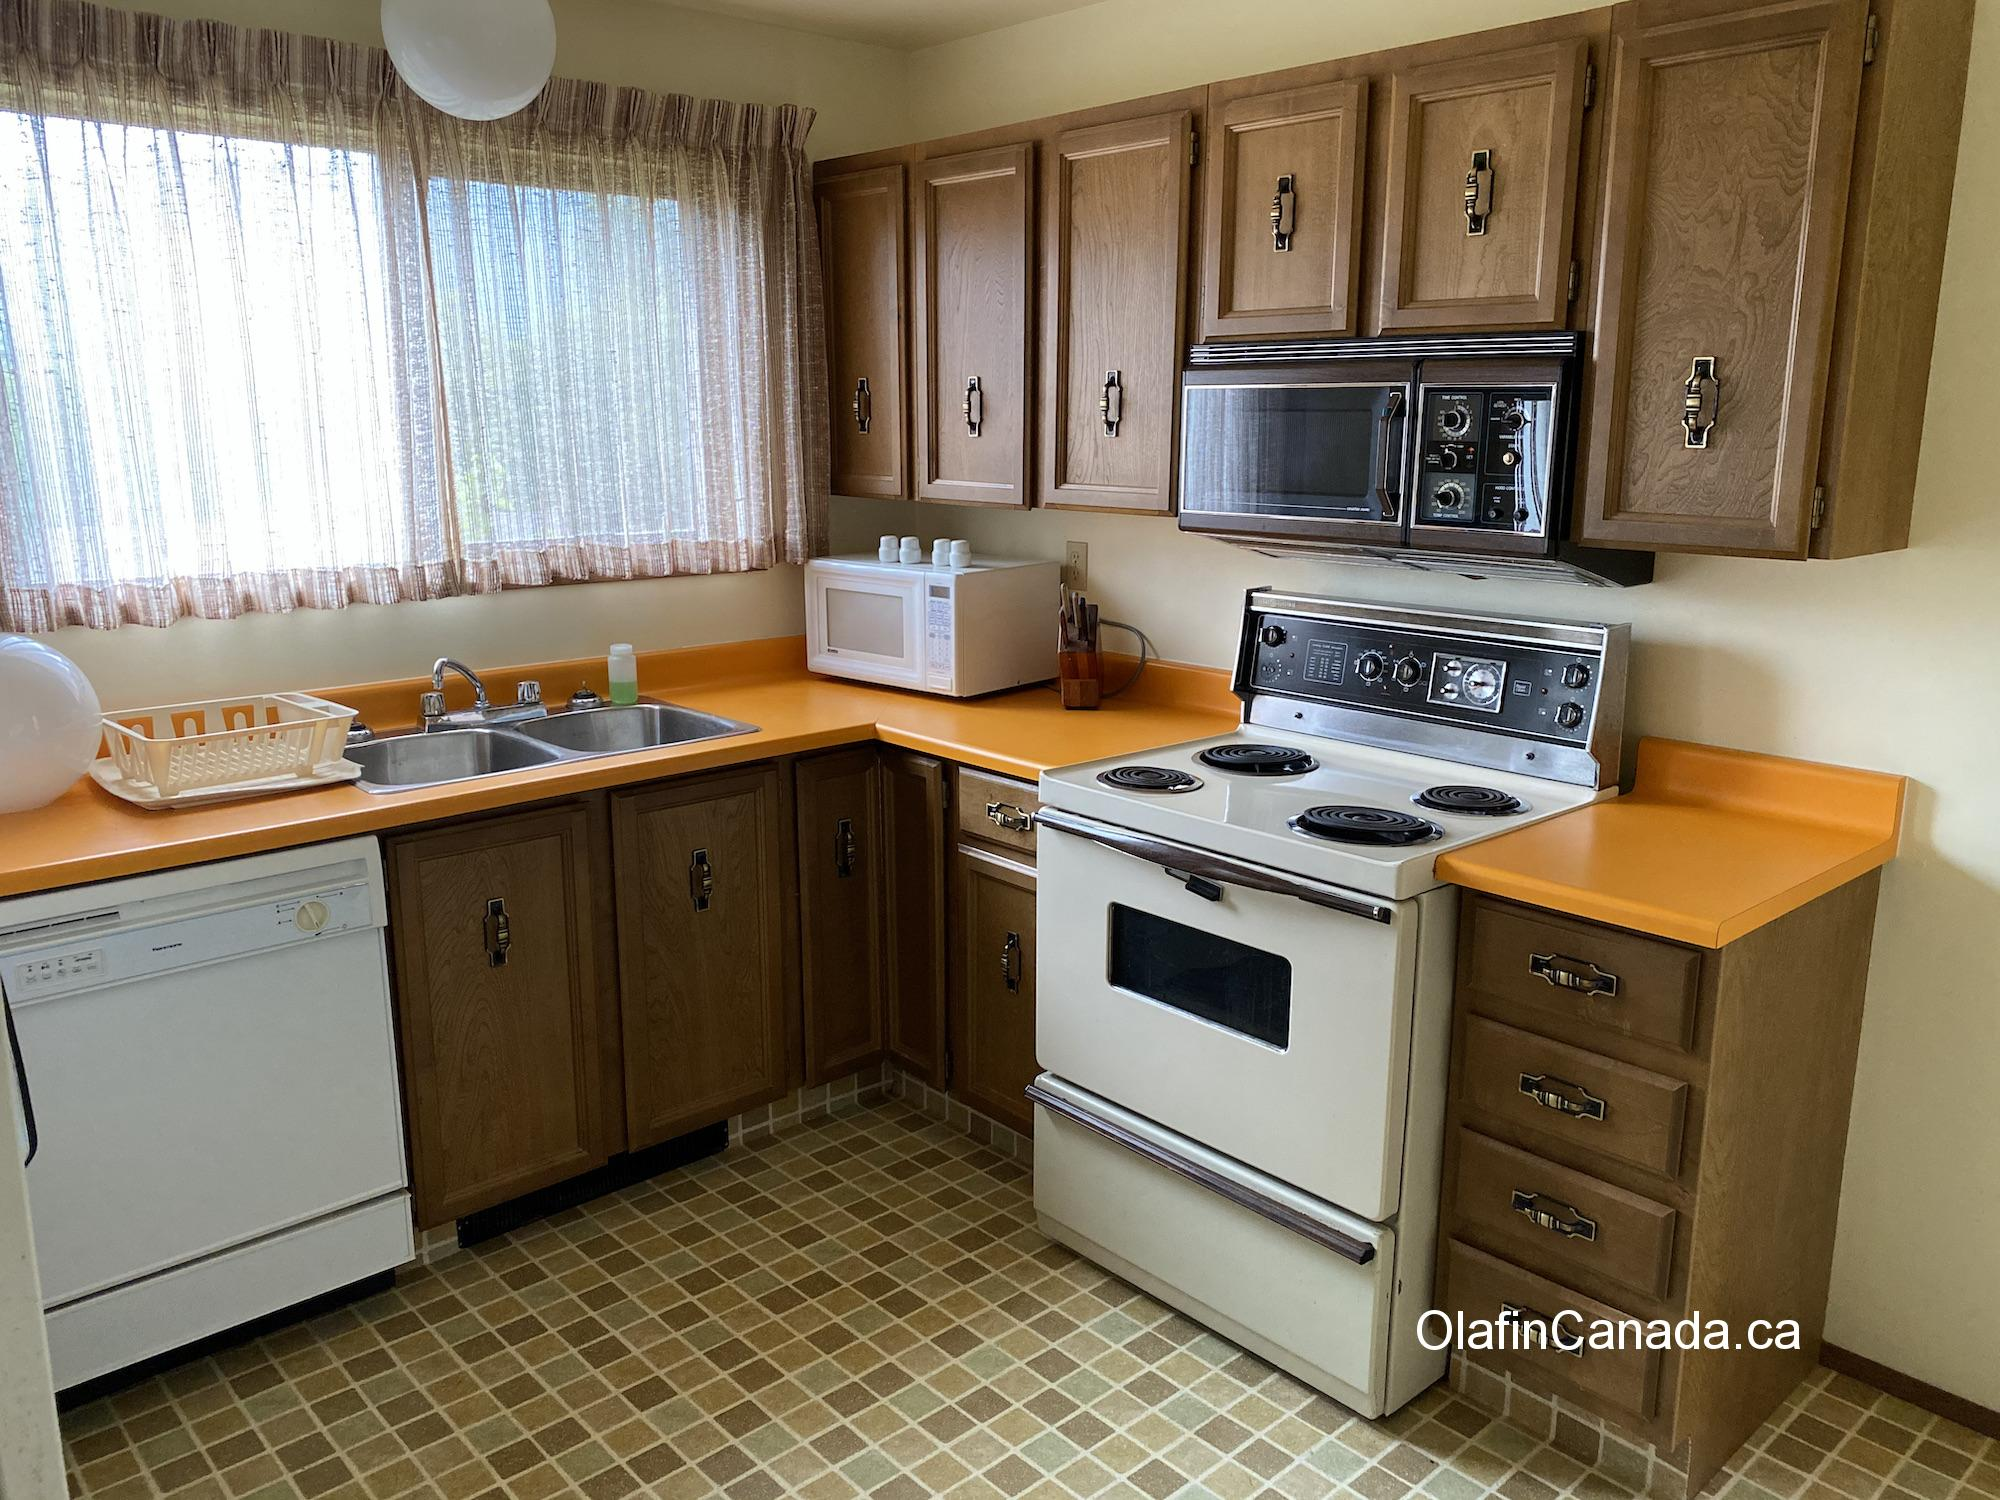 70's kitchen with modern microwave and oven #olafincanada #britishcolumbia #discoverbc #abandonedbc #kitsault